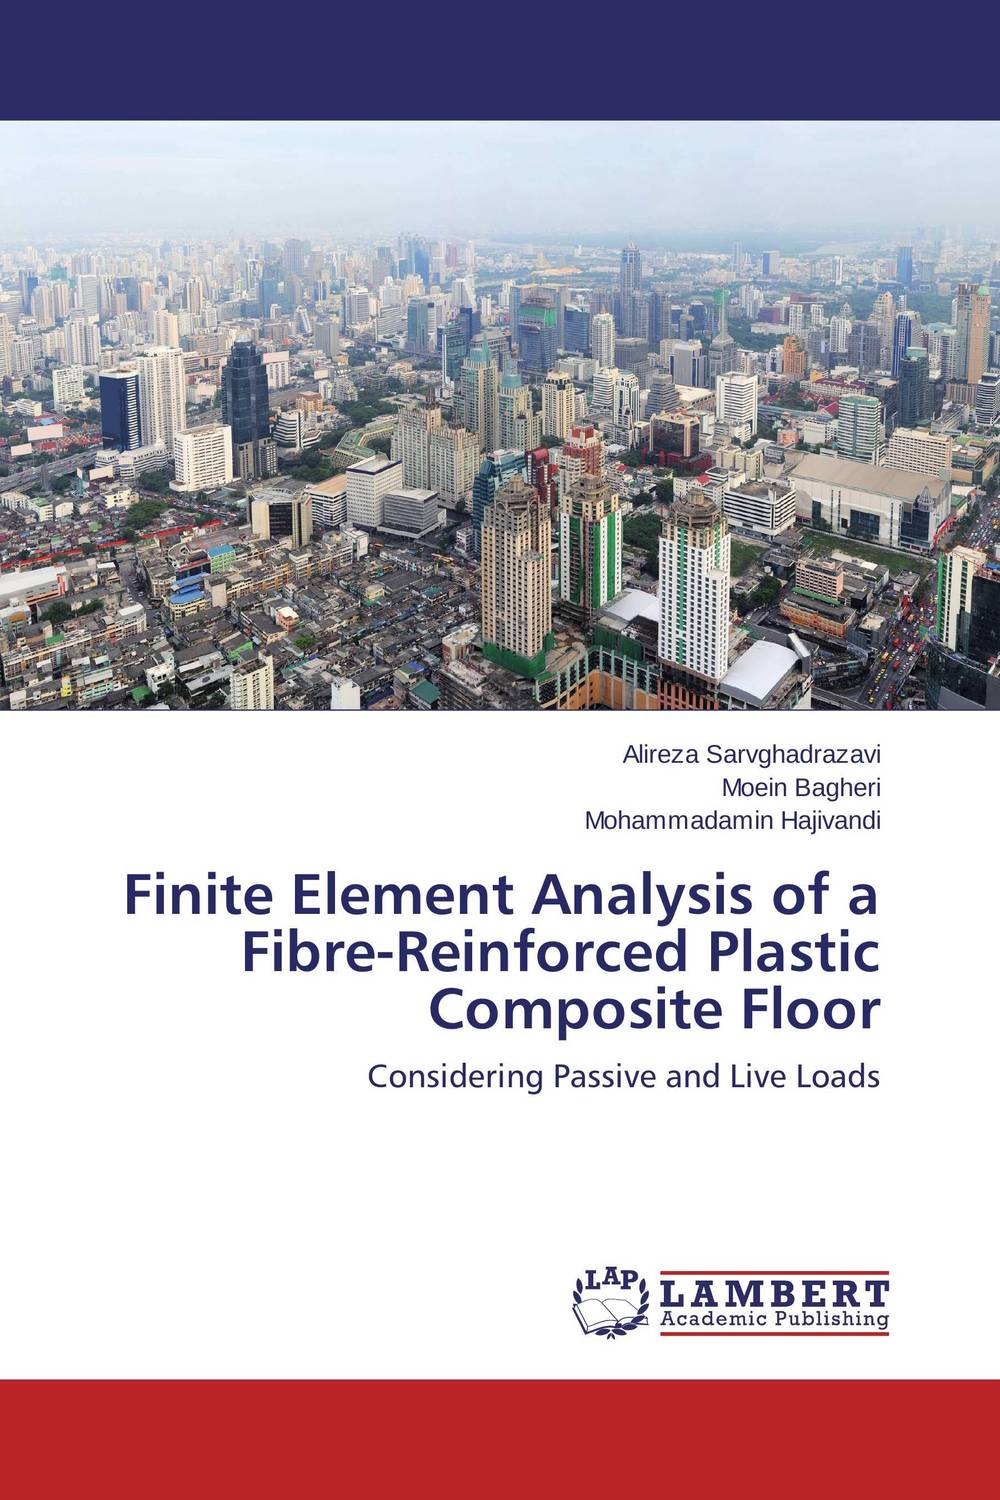 Finite Element Analysis of a Fibre-Reinforced Plastic Composite Floor darlington hove the finite element analysis of a composite sandwich beam